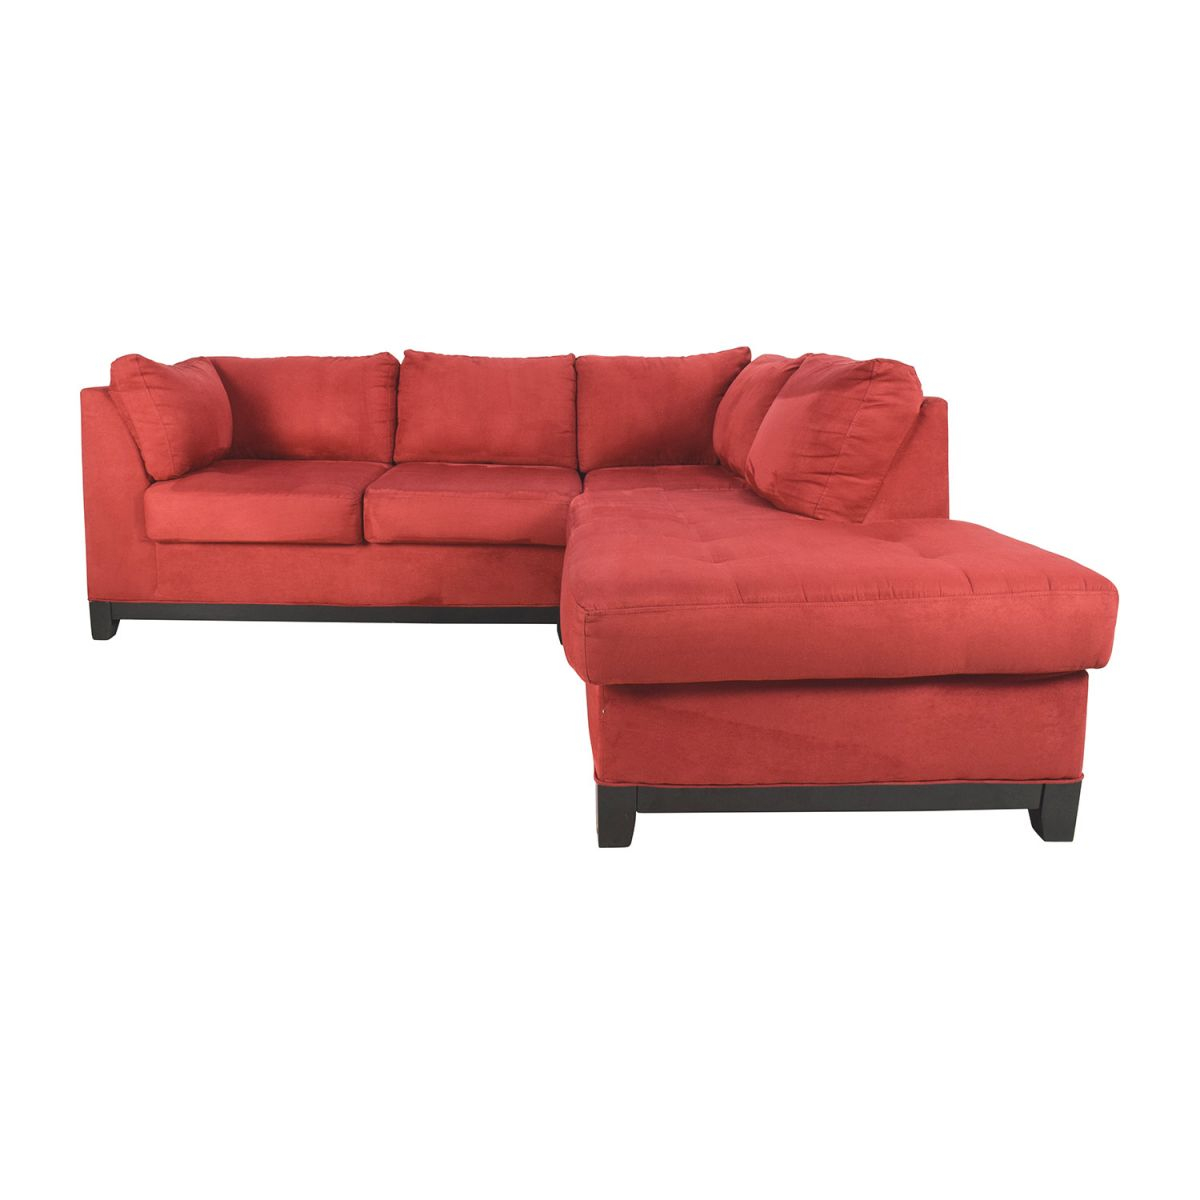 67% Off – Raymour & Flanigan Raymour & Flanigan Zella Red Sectional / Sofas with Lovely Raymour And Flanigan Sectional Sofas